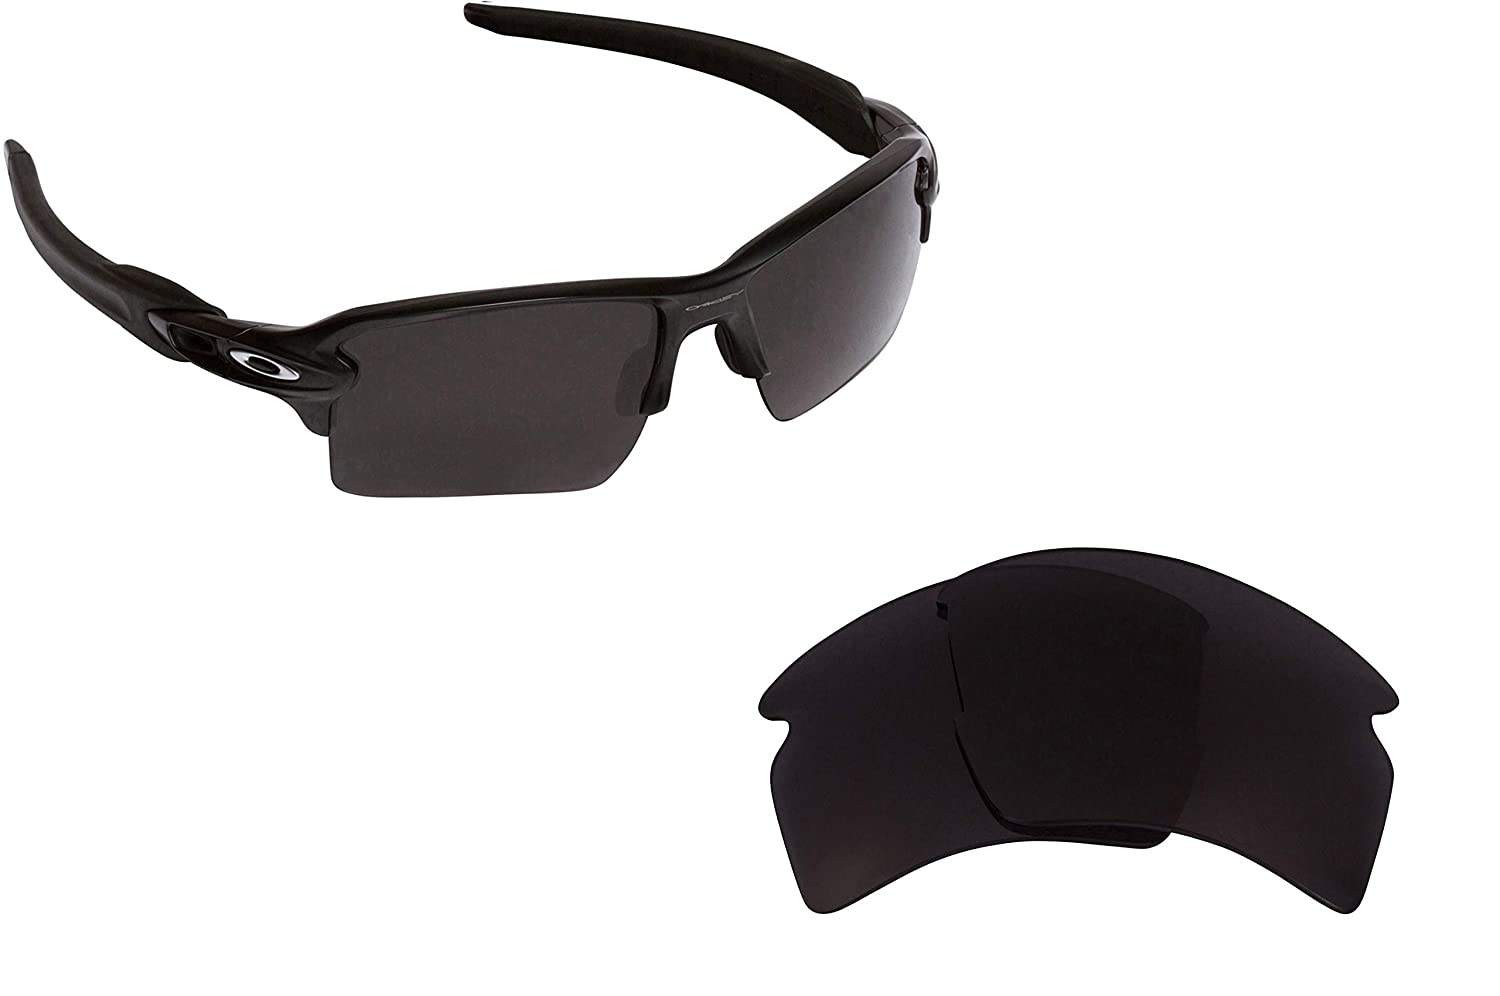 a801012484 Seek Optics Replacement Lenses for Oakley FLAK 2.0 XL